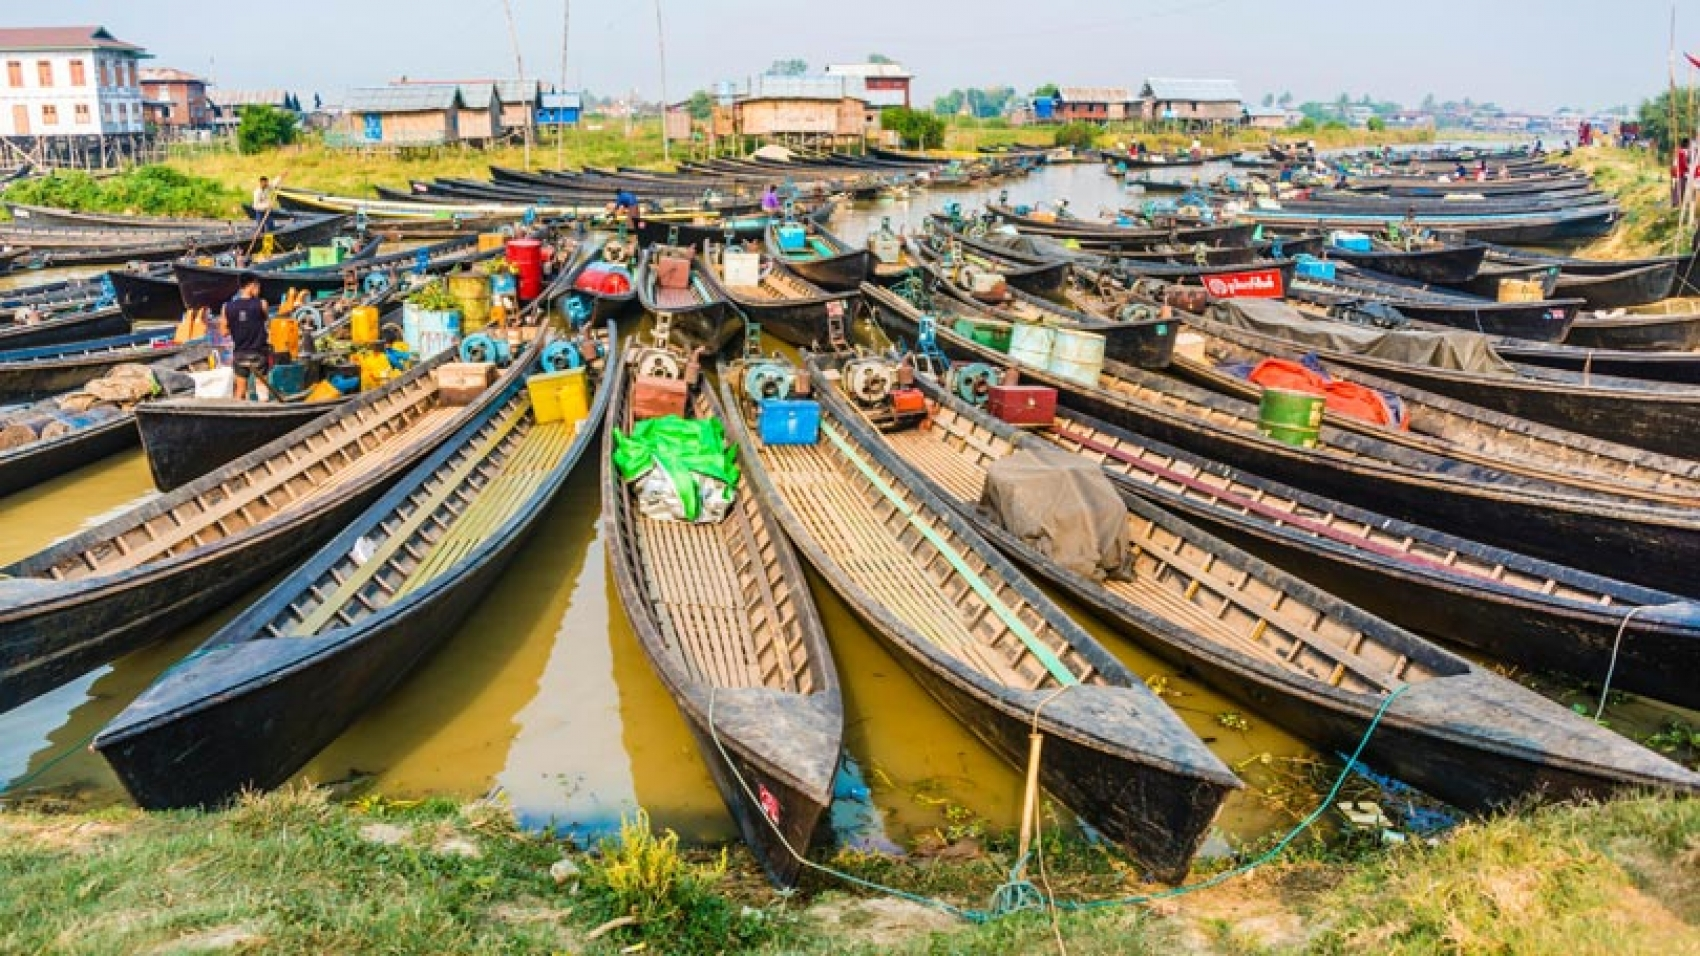 wooden-boats-at-dock-in-the-harbour-at-nampan-myanmar-136425484206302601-180228173703